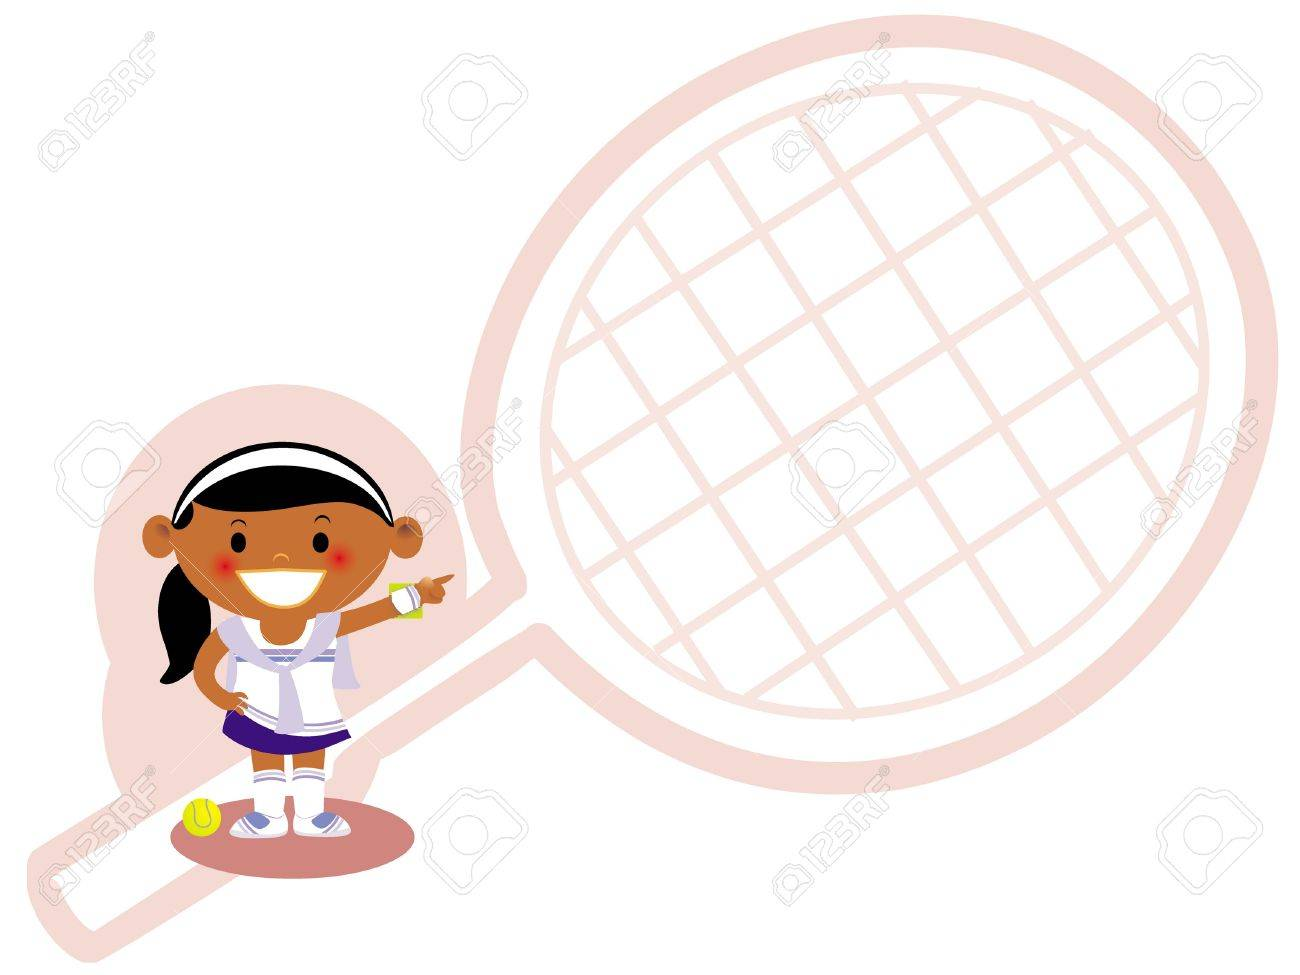 Tennis Racquets Drawing At Getdrawings Com Free For Personal Use